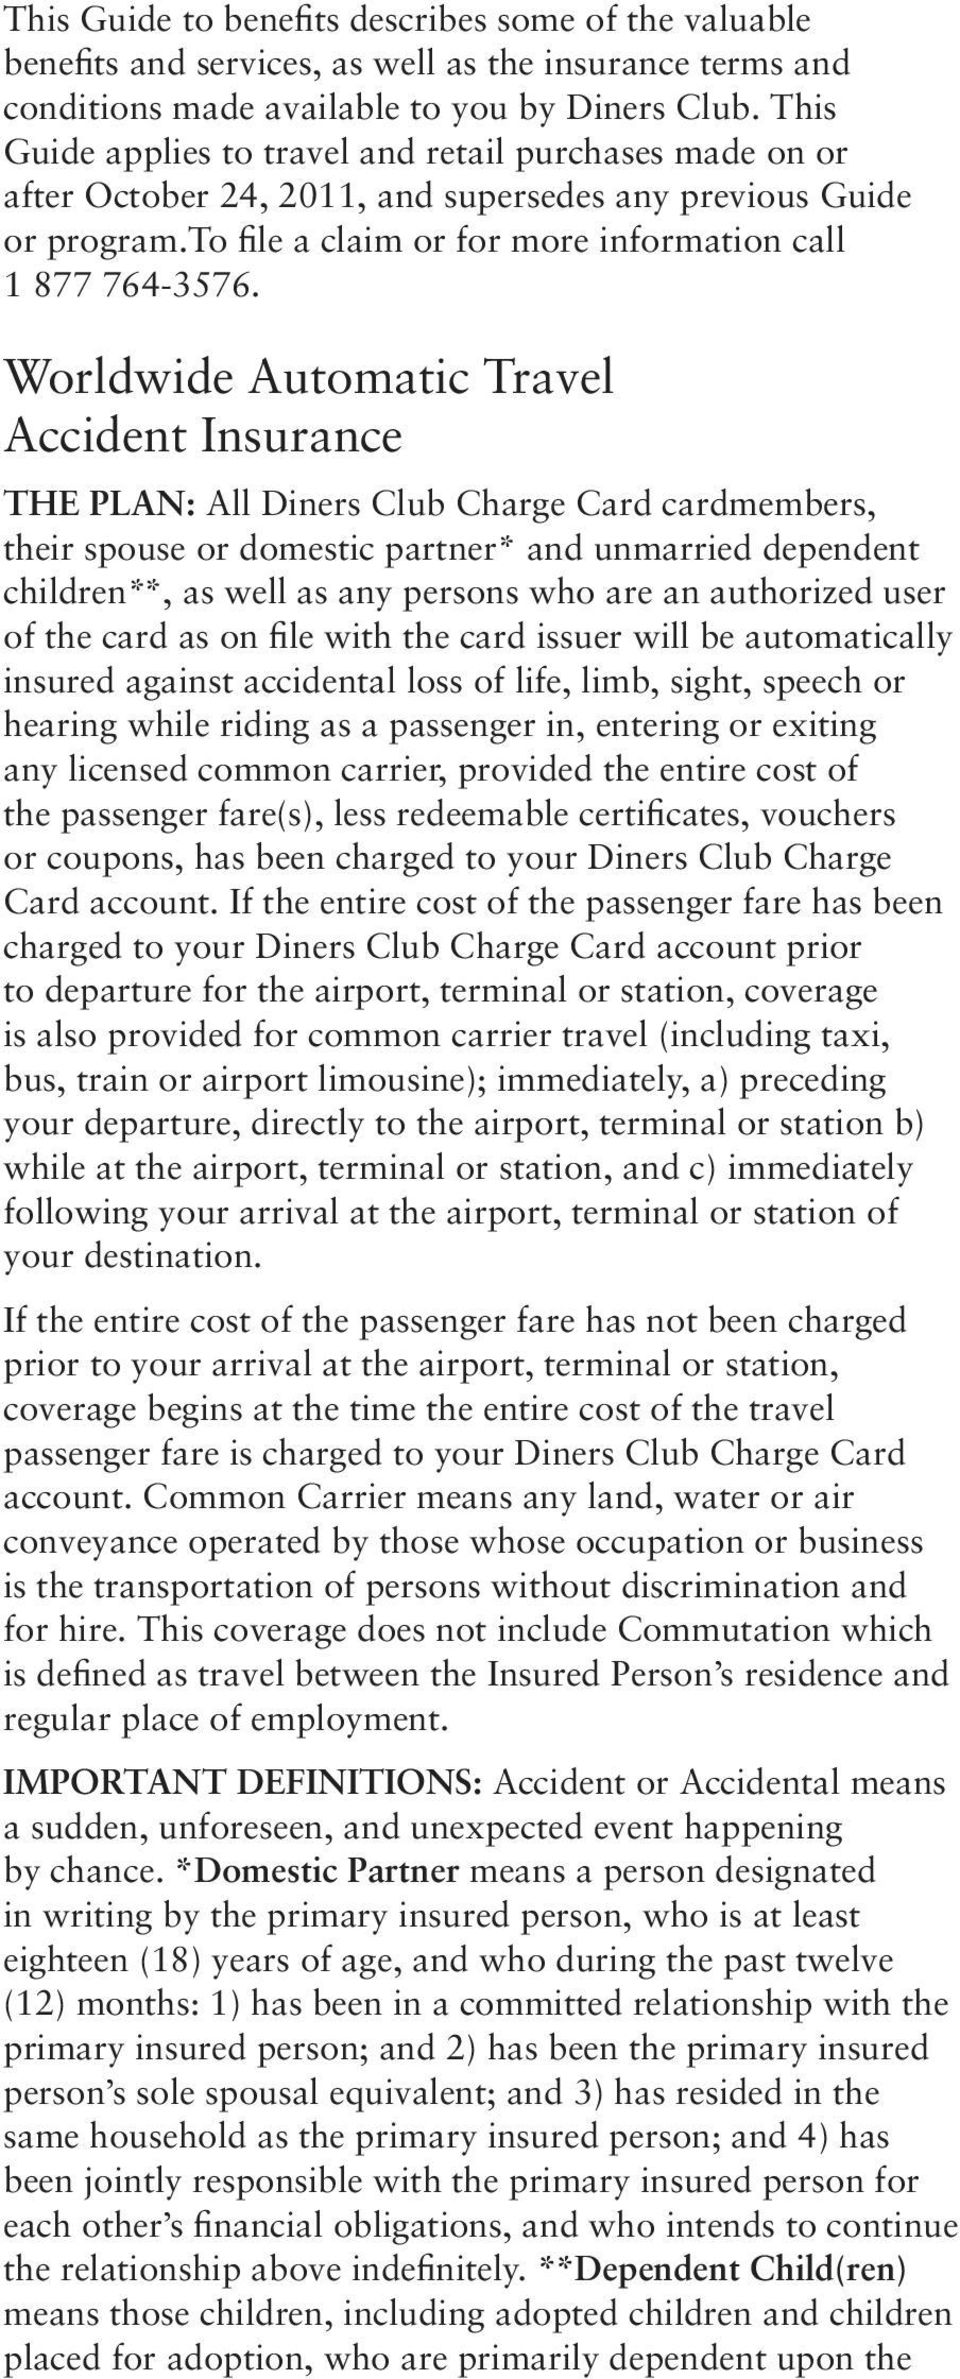 Worldwide Automatic Travel Accident Insurance THE PLAN: All Diners Club Charge Card cardmembers, their spouse or domestic partner* and unmarried dependent children**, as well as any persons who are